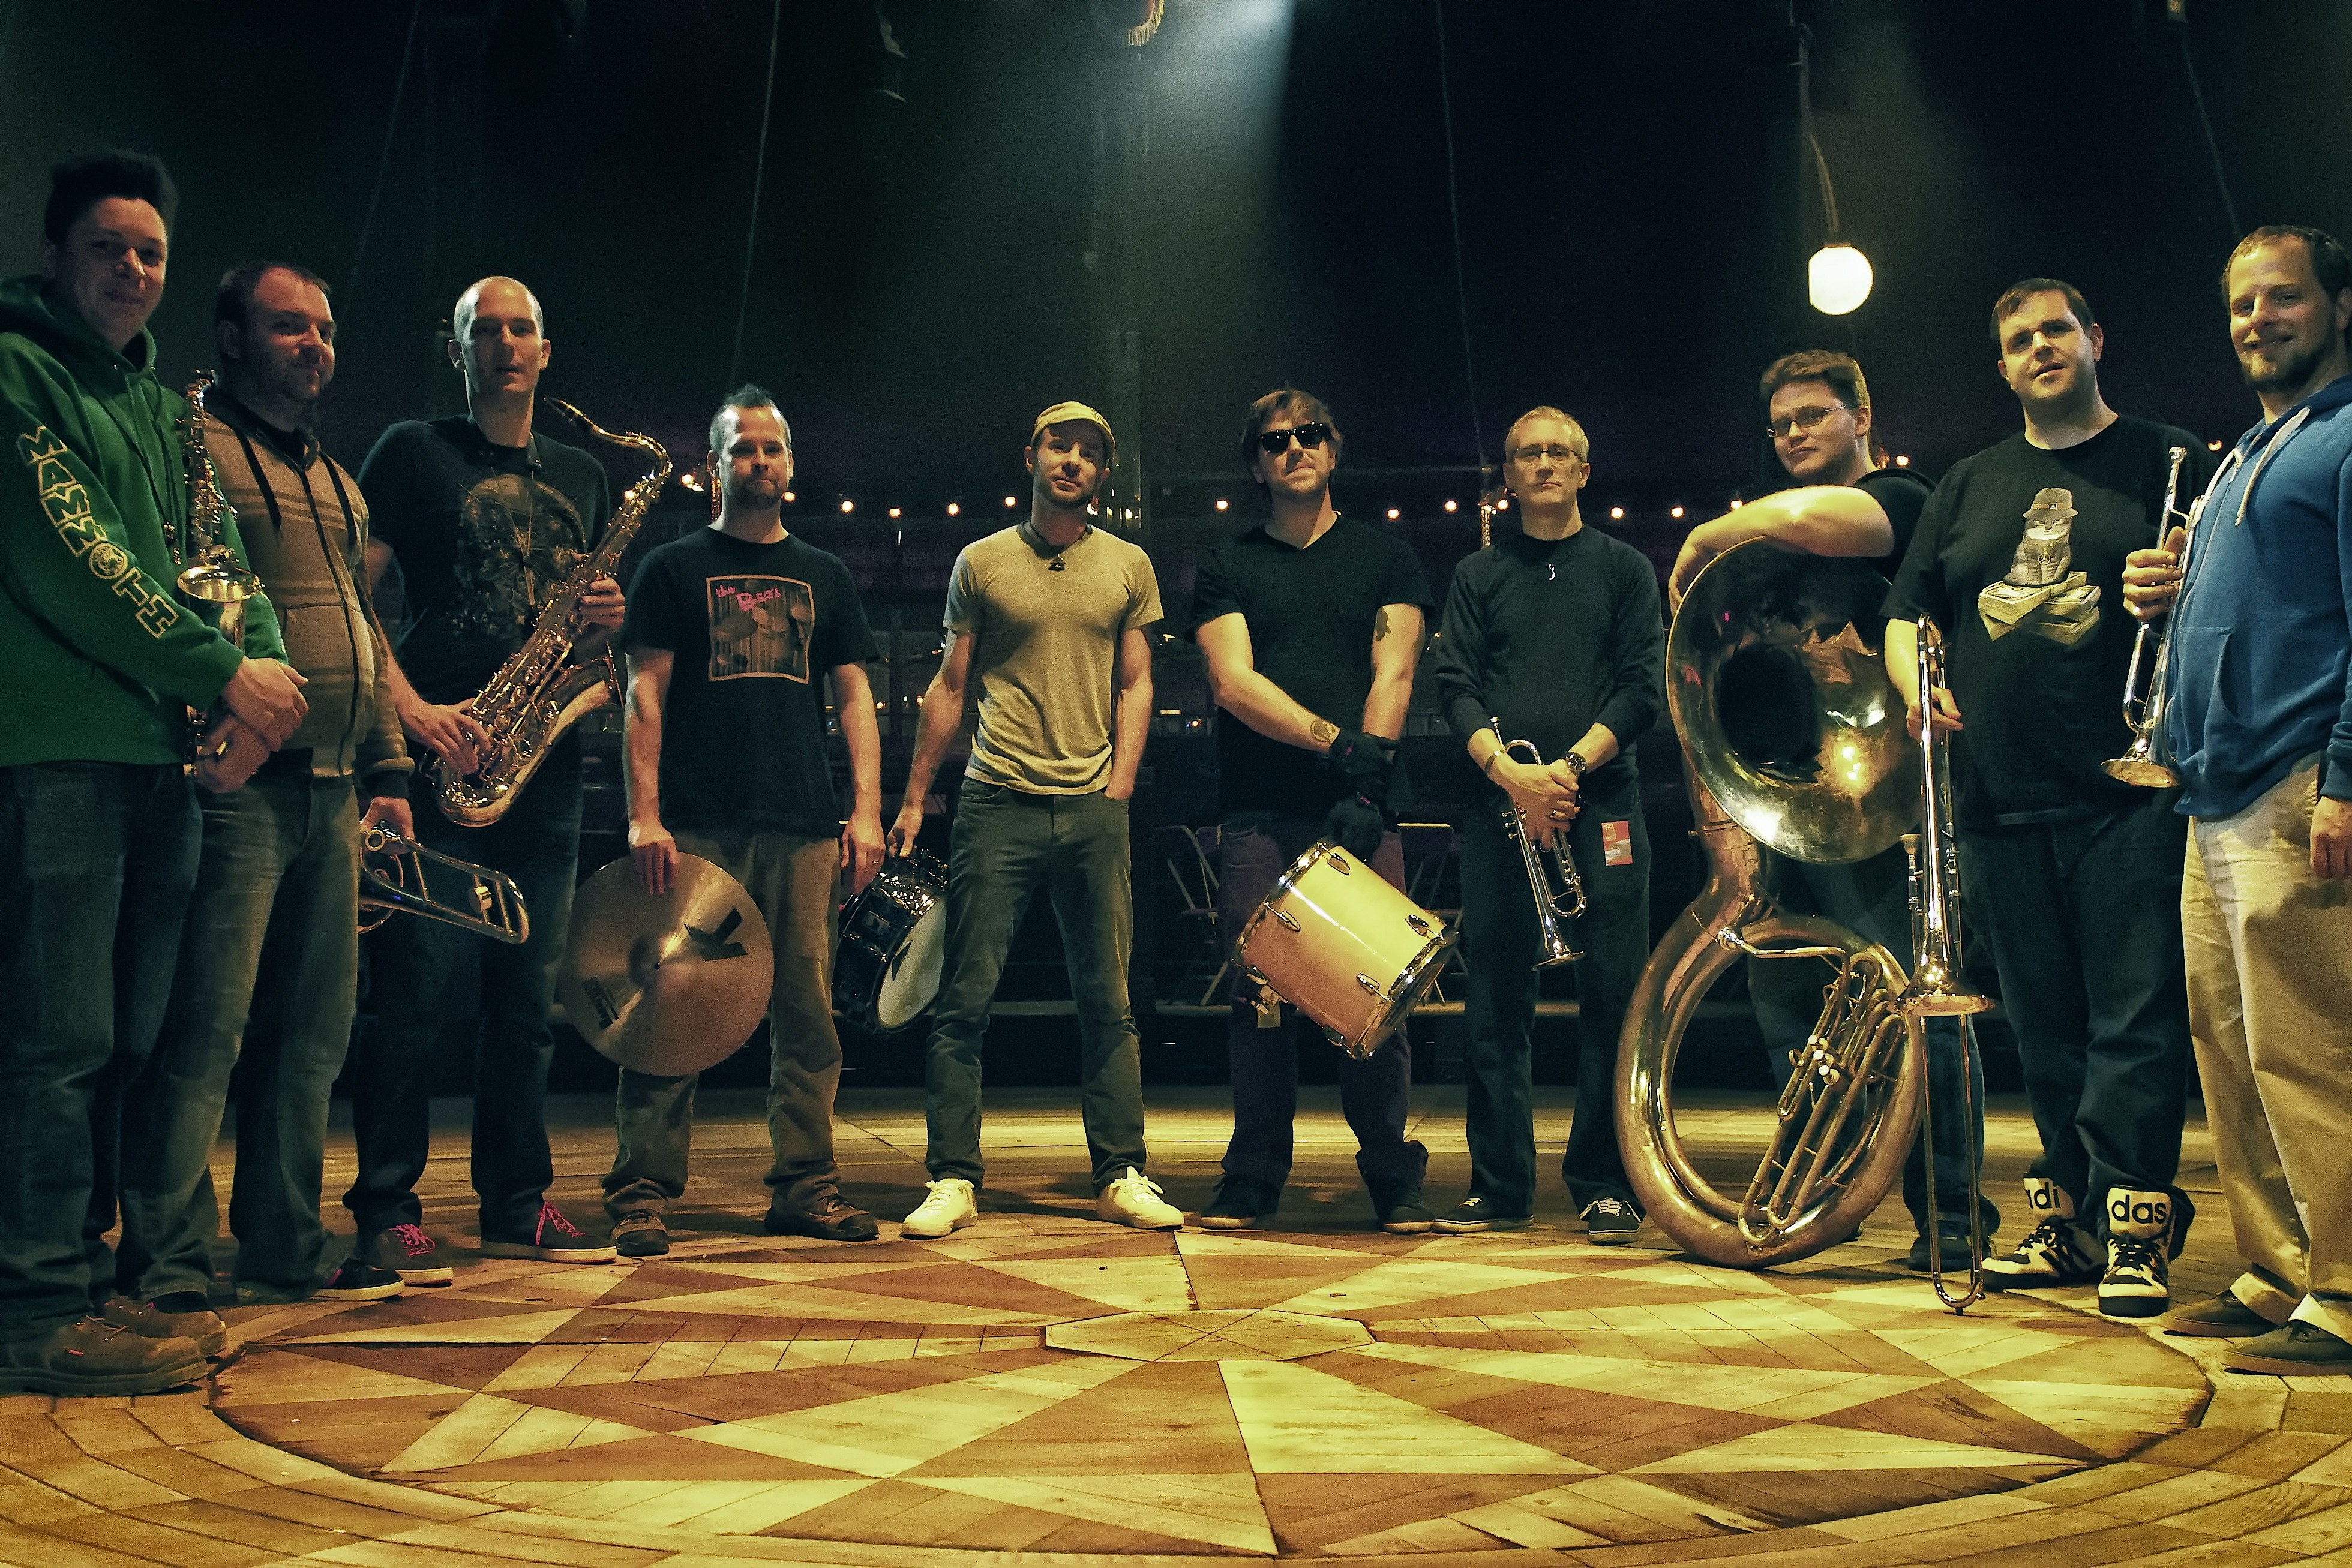 Preview: YOUNGBLOOD BRASS BAND